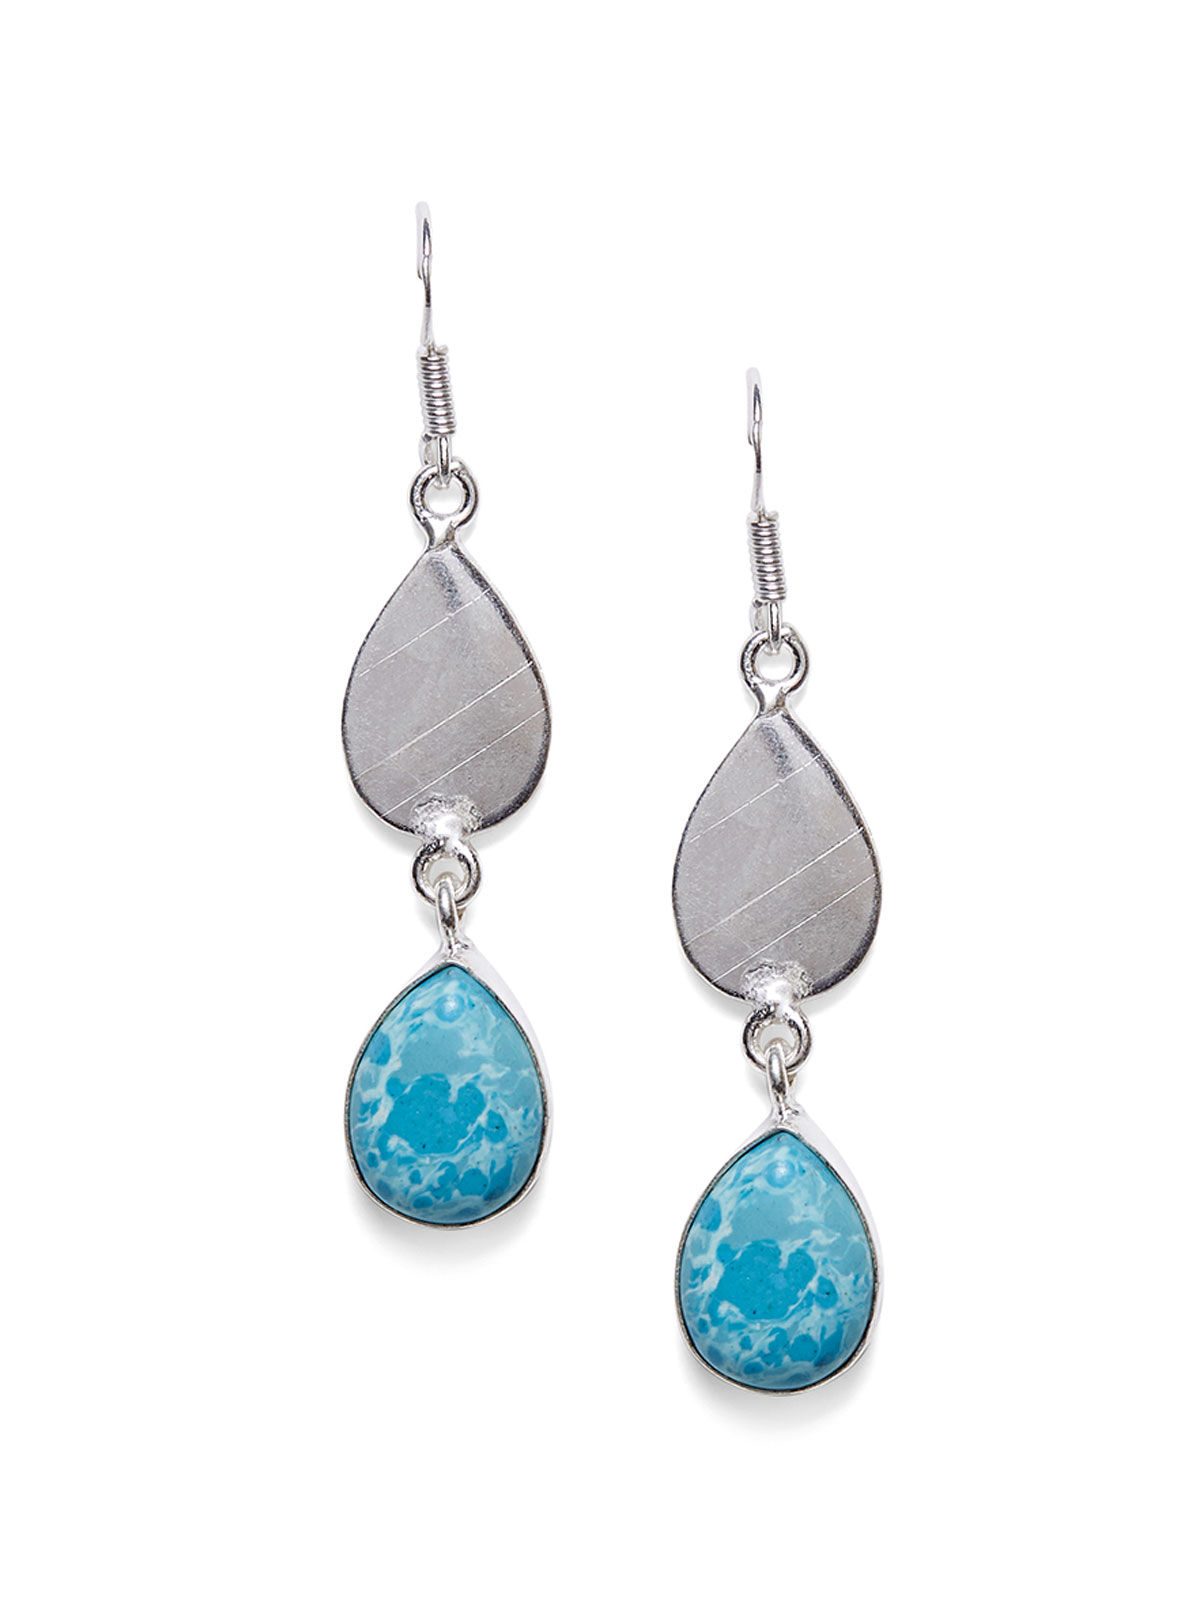 Imli Street blue color silver tone brass earrings